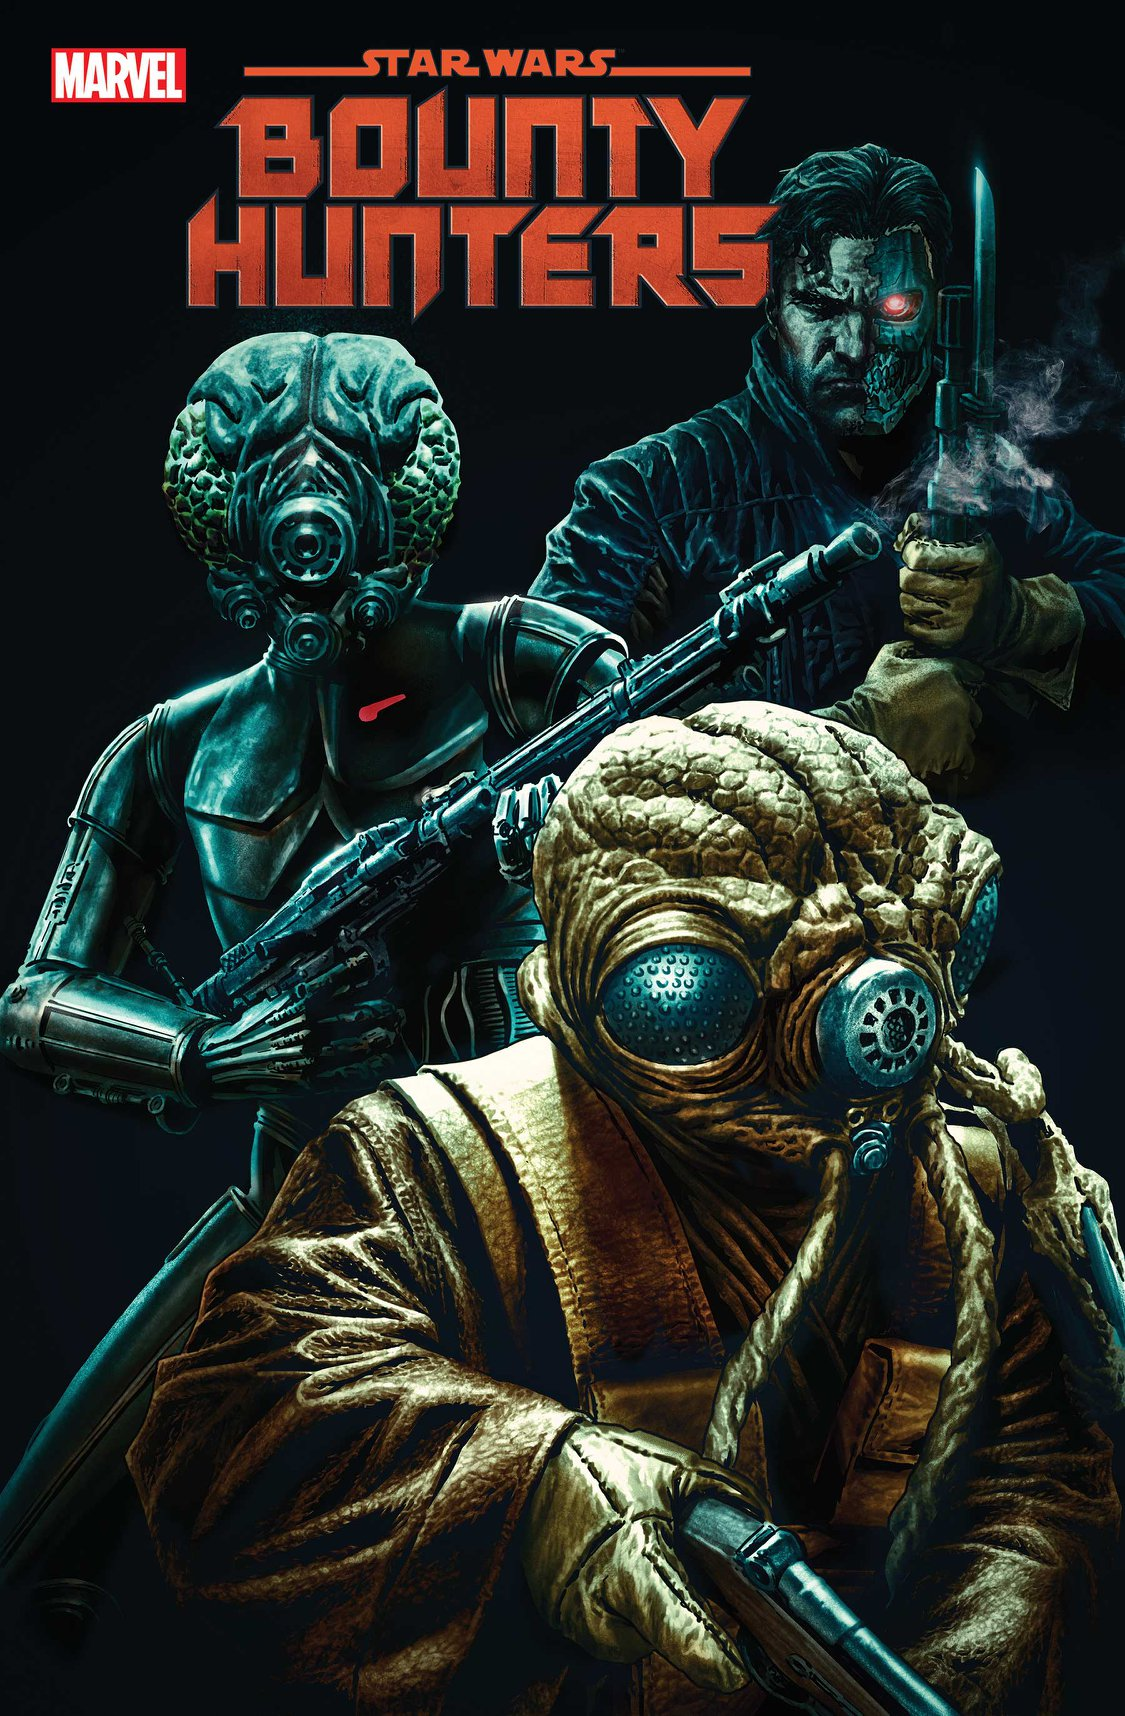 Star Wars Bounty Hunters: Story 2